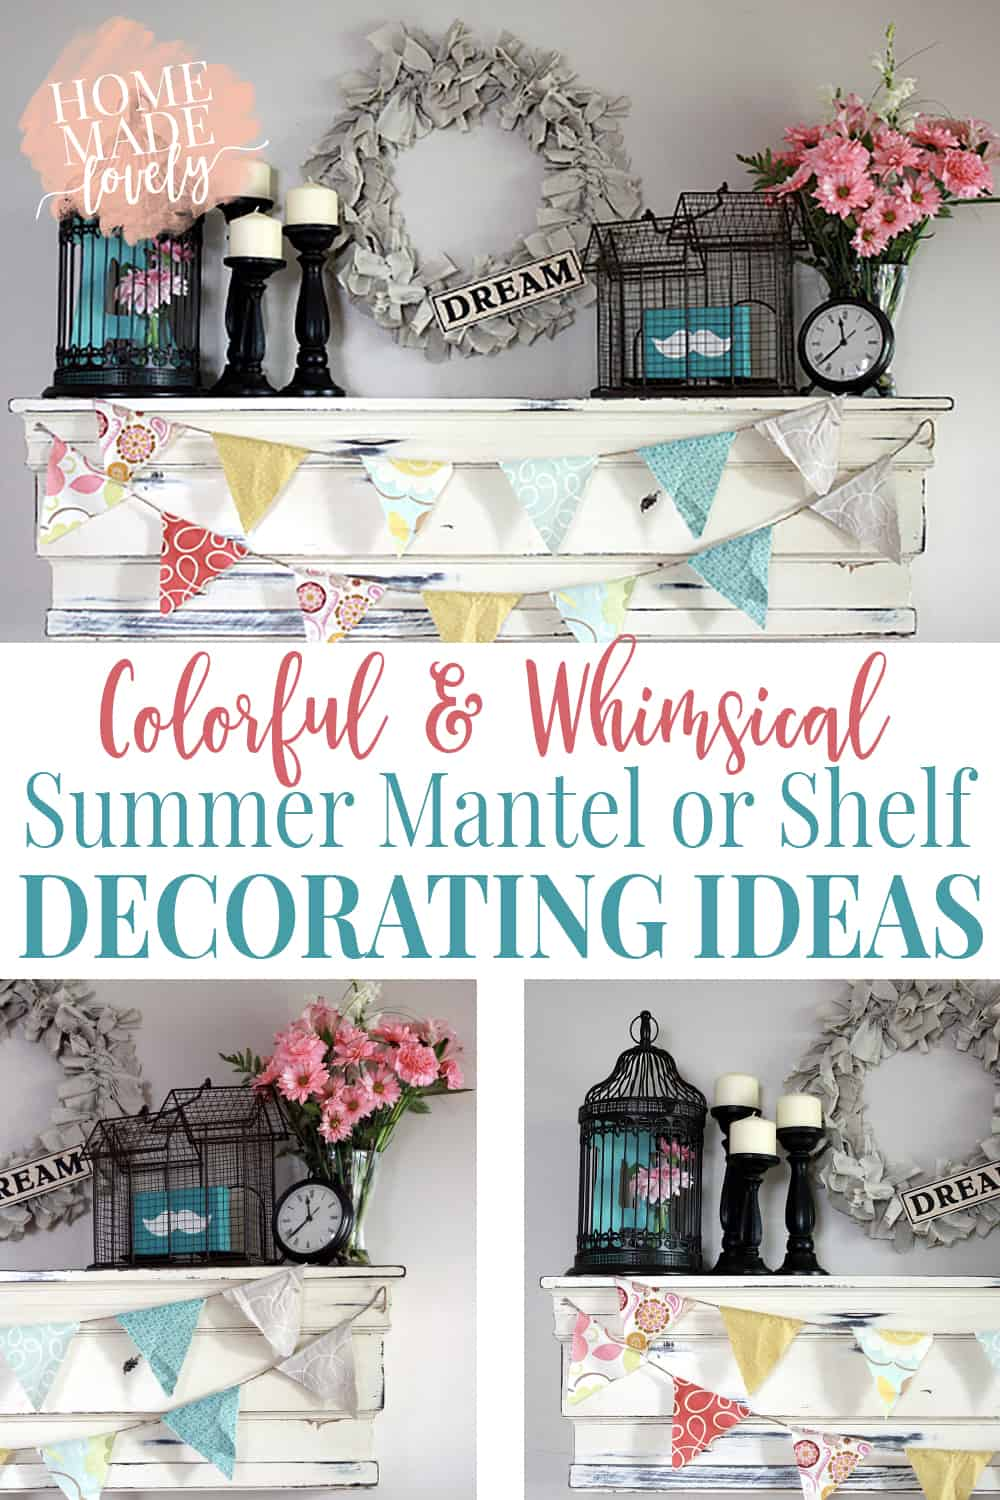 Summer is the perfect time to add a little color and whimsy to your decor. Even if you're a neutrals lover like me. Here are a few colorful and whimsical summer mantel or shelf decorating ideas!